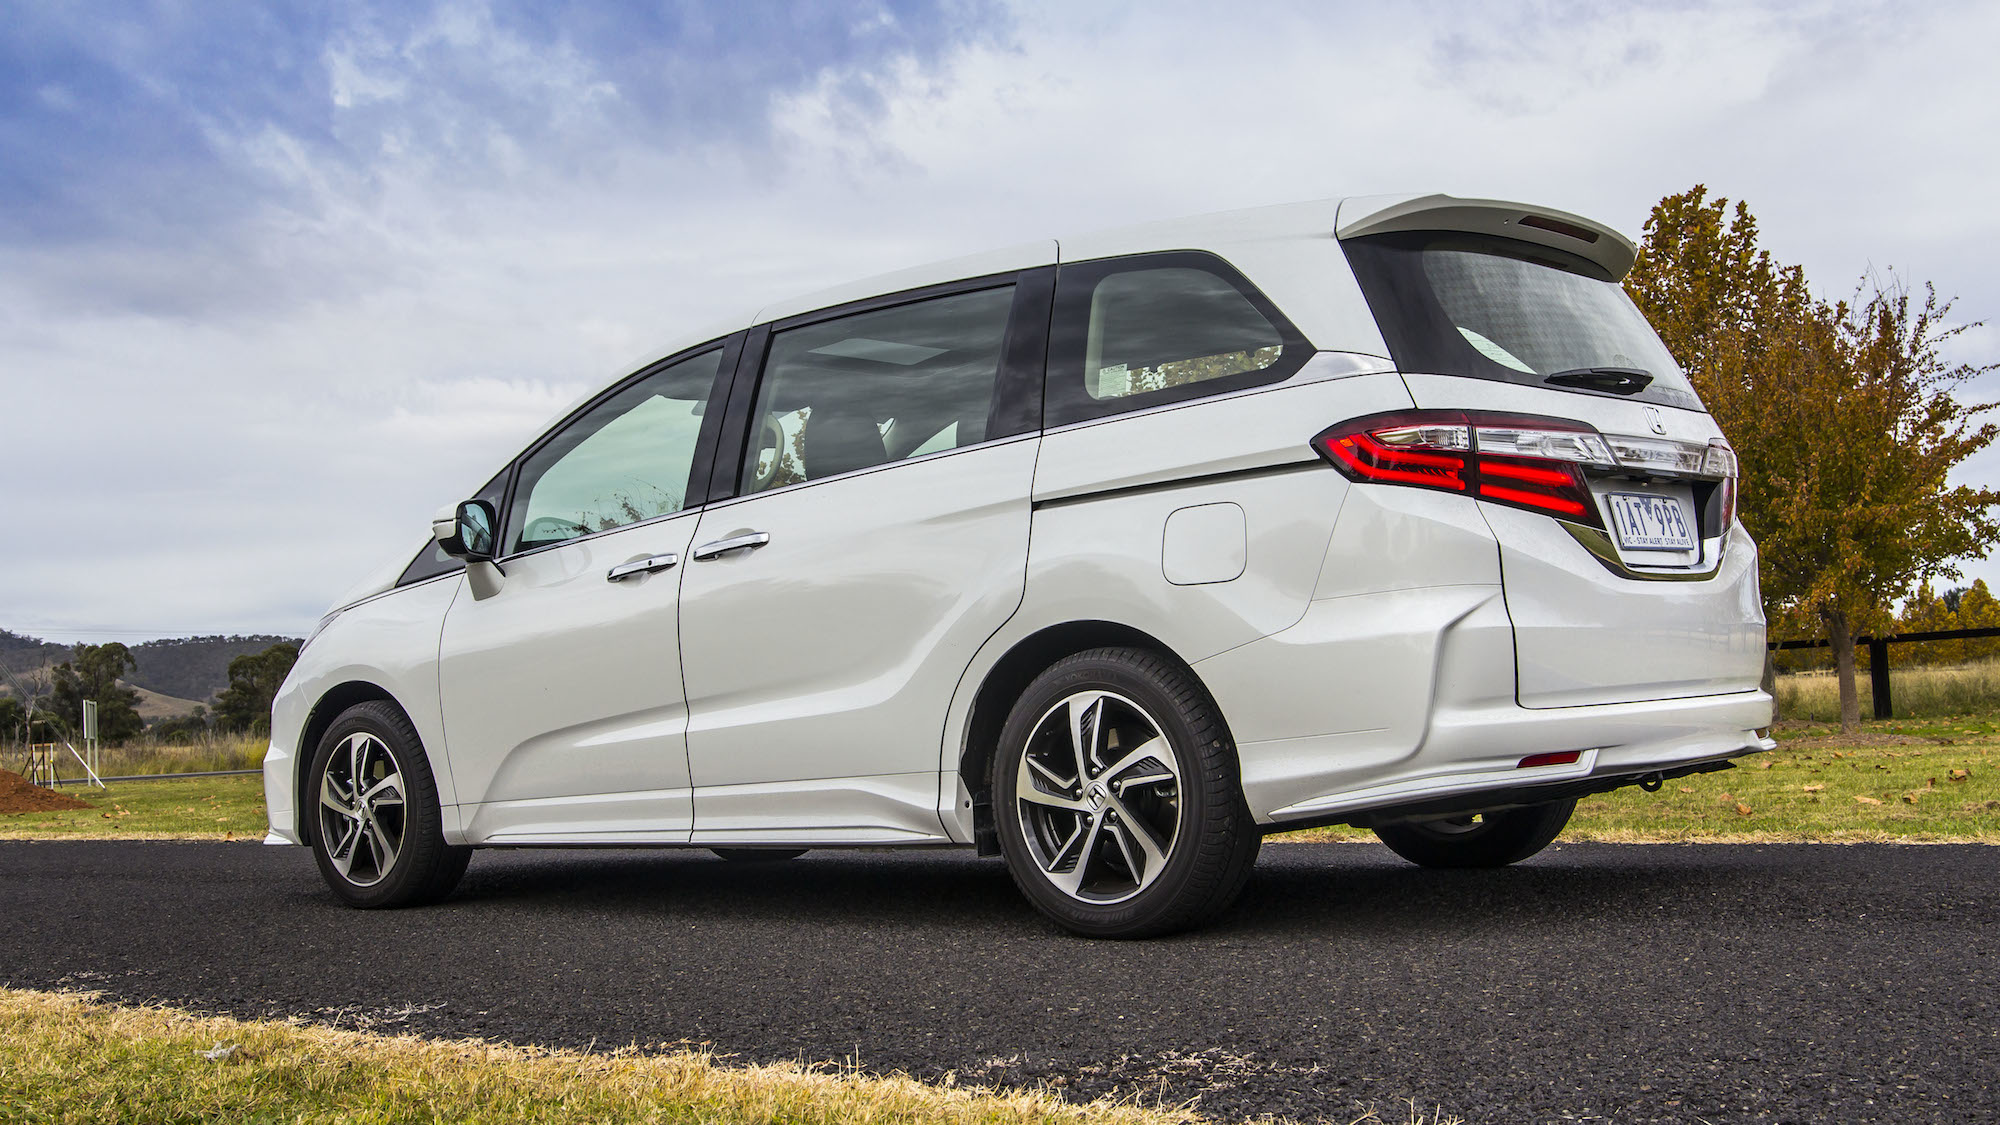 Honda Odyssey Review: LT3 - Photos